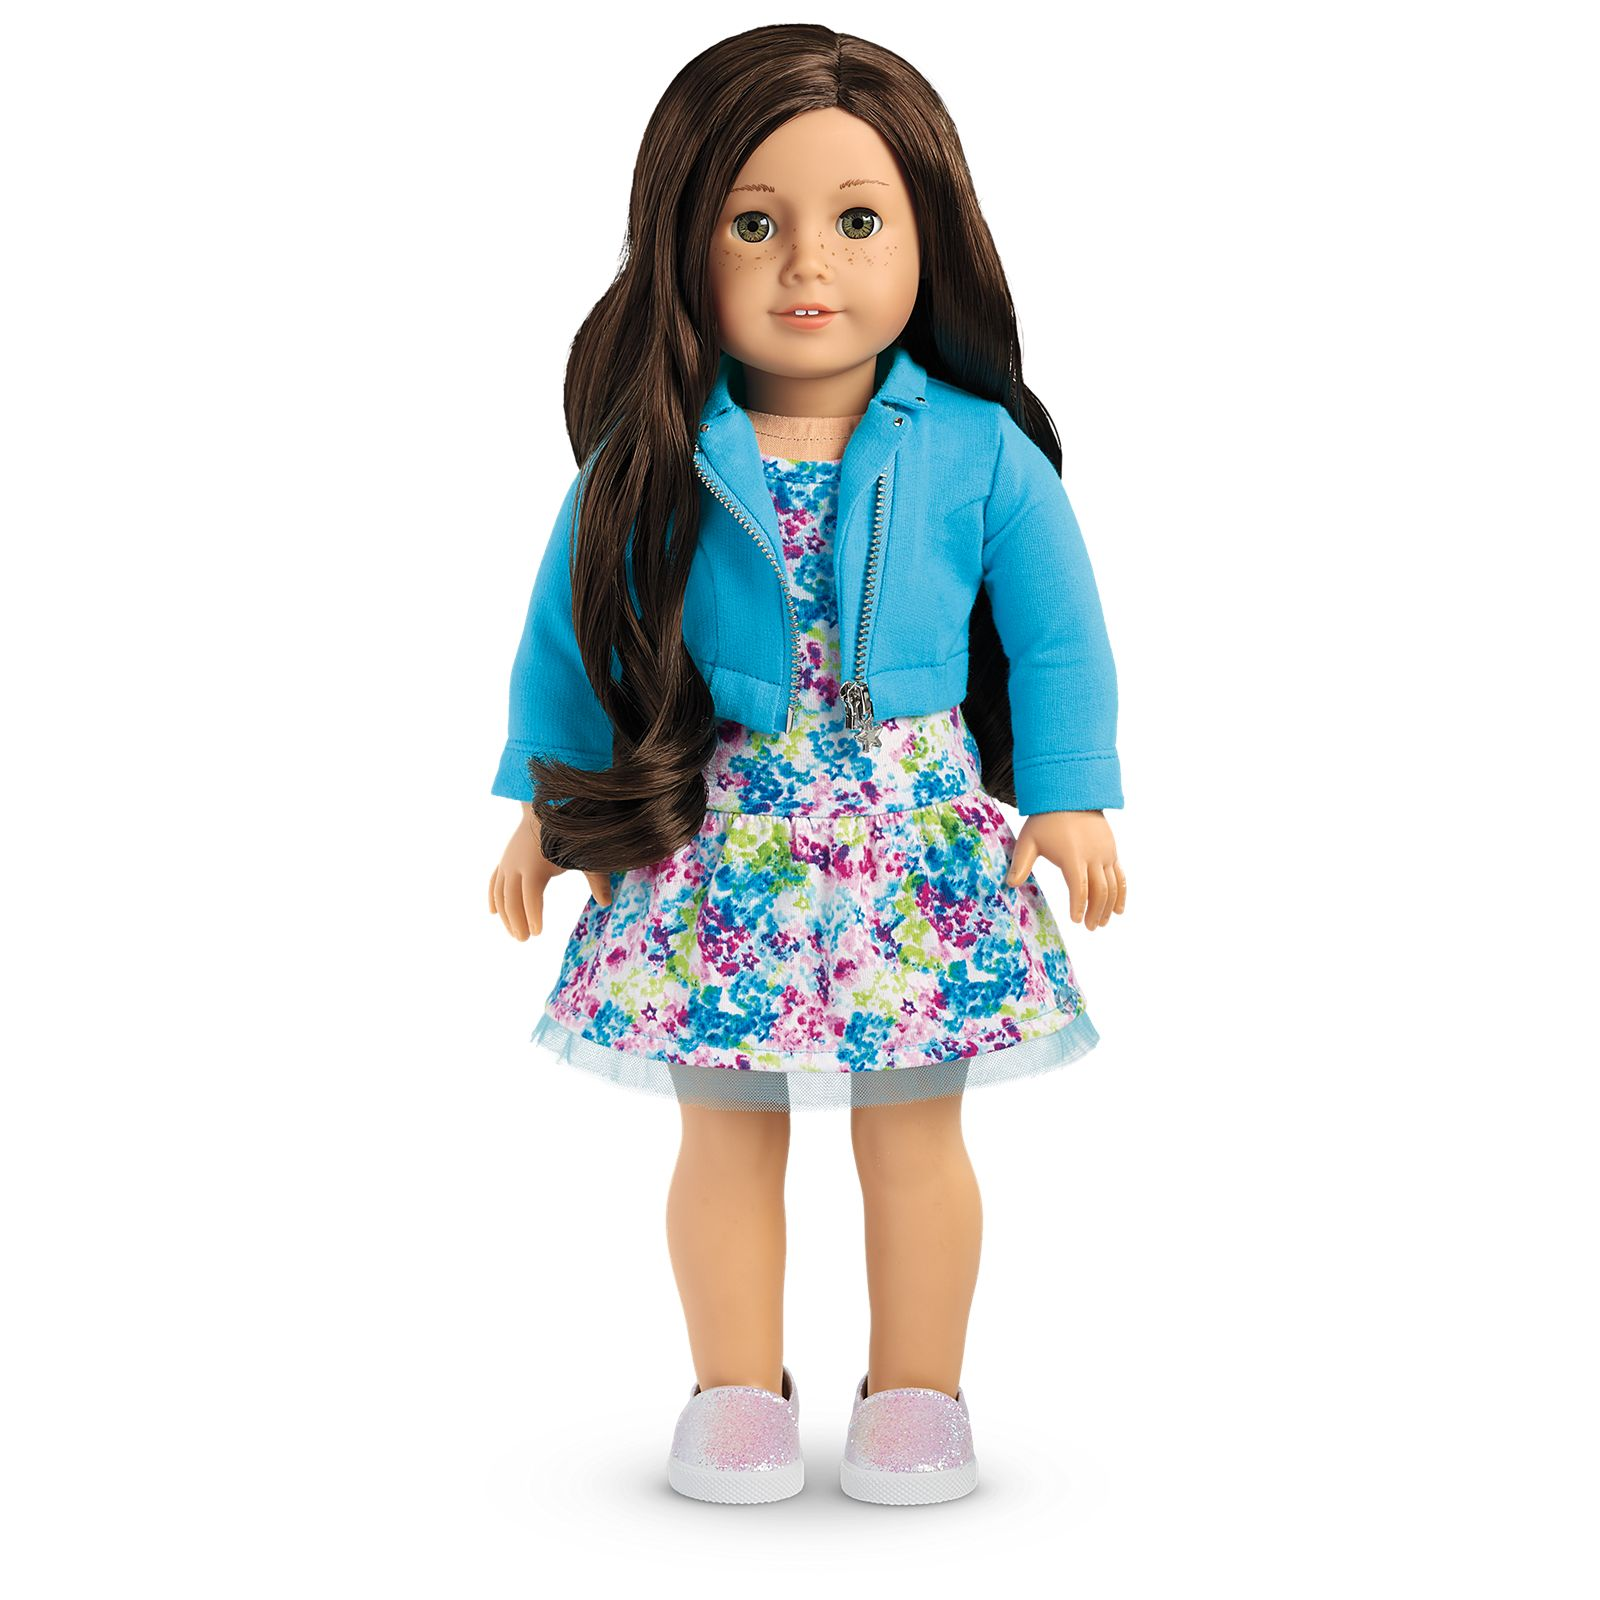 American Girl Truly Me Doll Meet Outfit Jacket off NEW in Box Doll